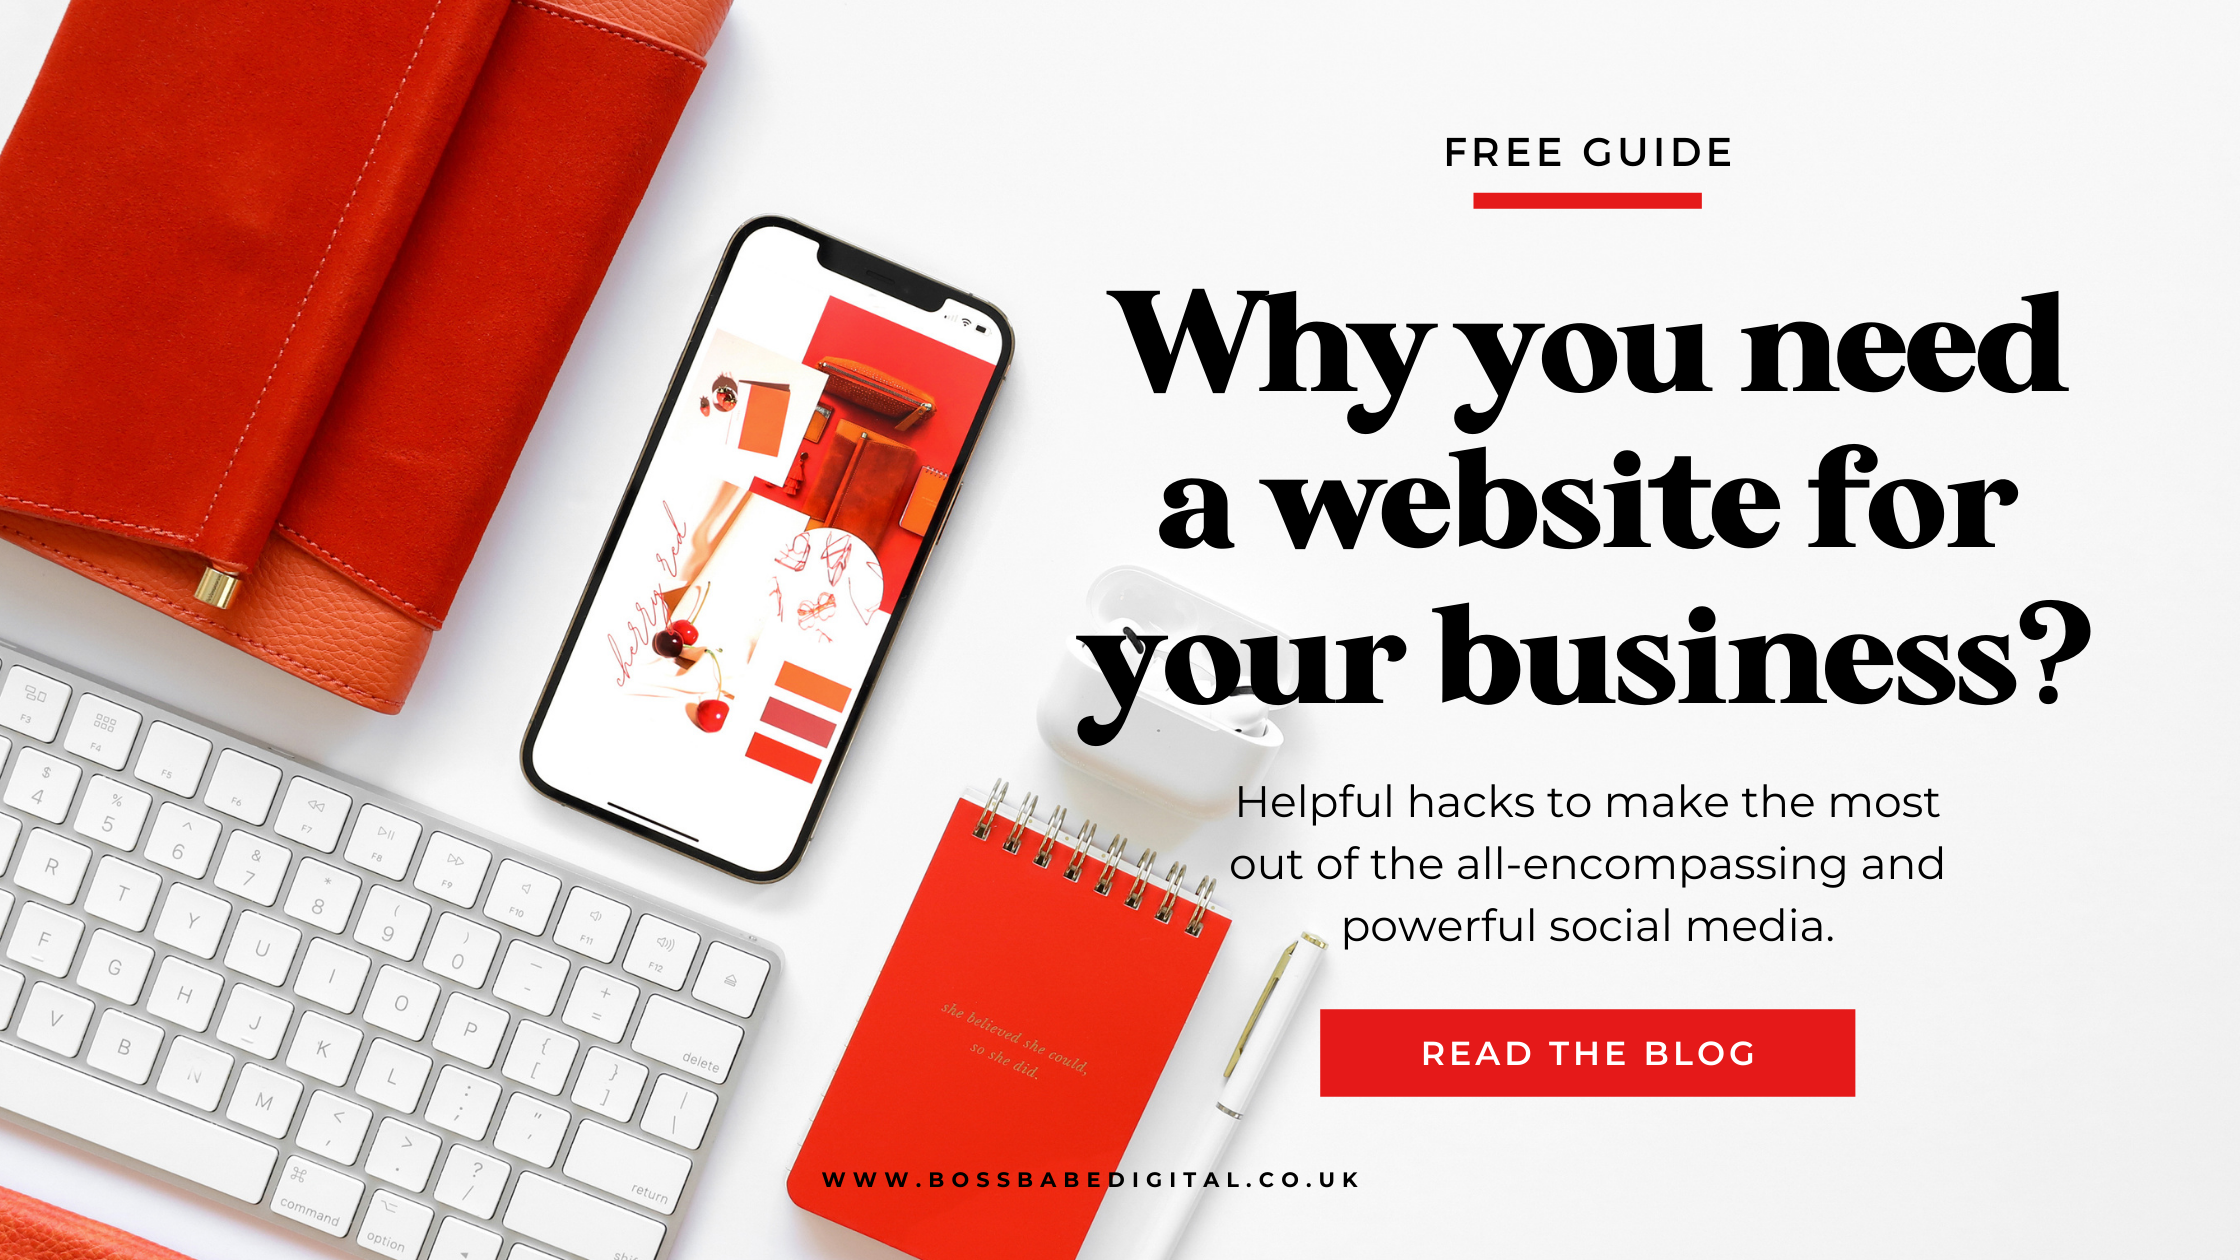 Why you need a website for your business